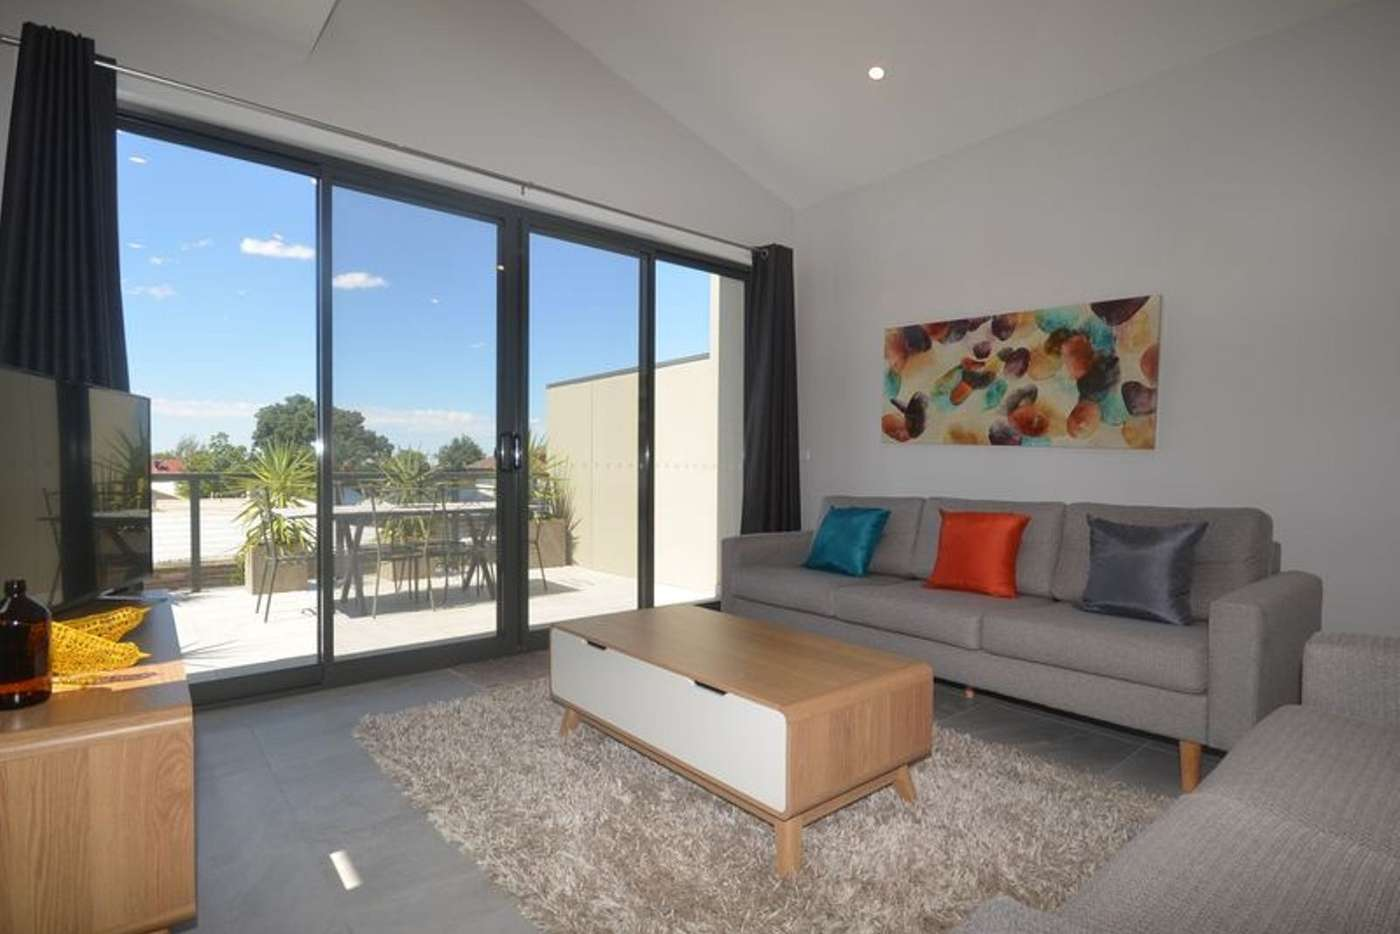 Main view of Homely house listing, 1/232 View Street, Bendigo VIC 3550